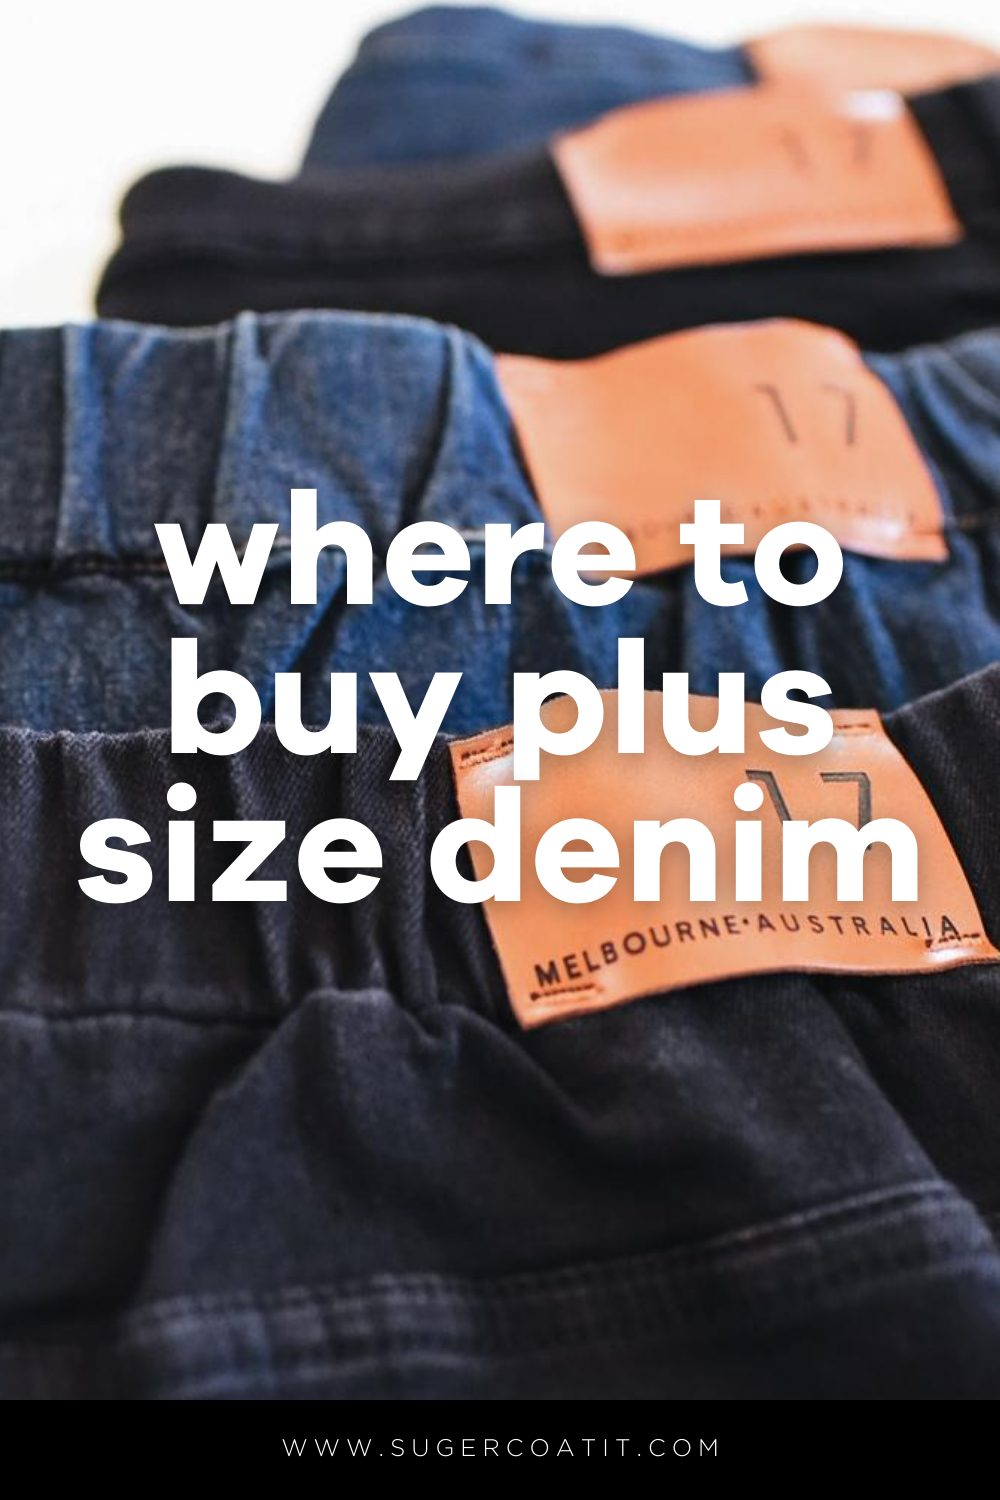 Where to buy plus size denim jeans - Suger Coat It